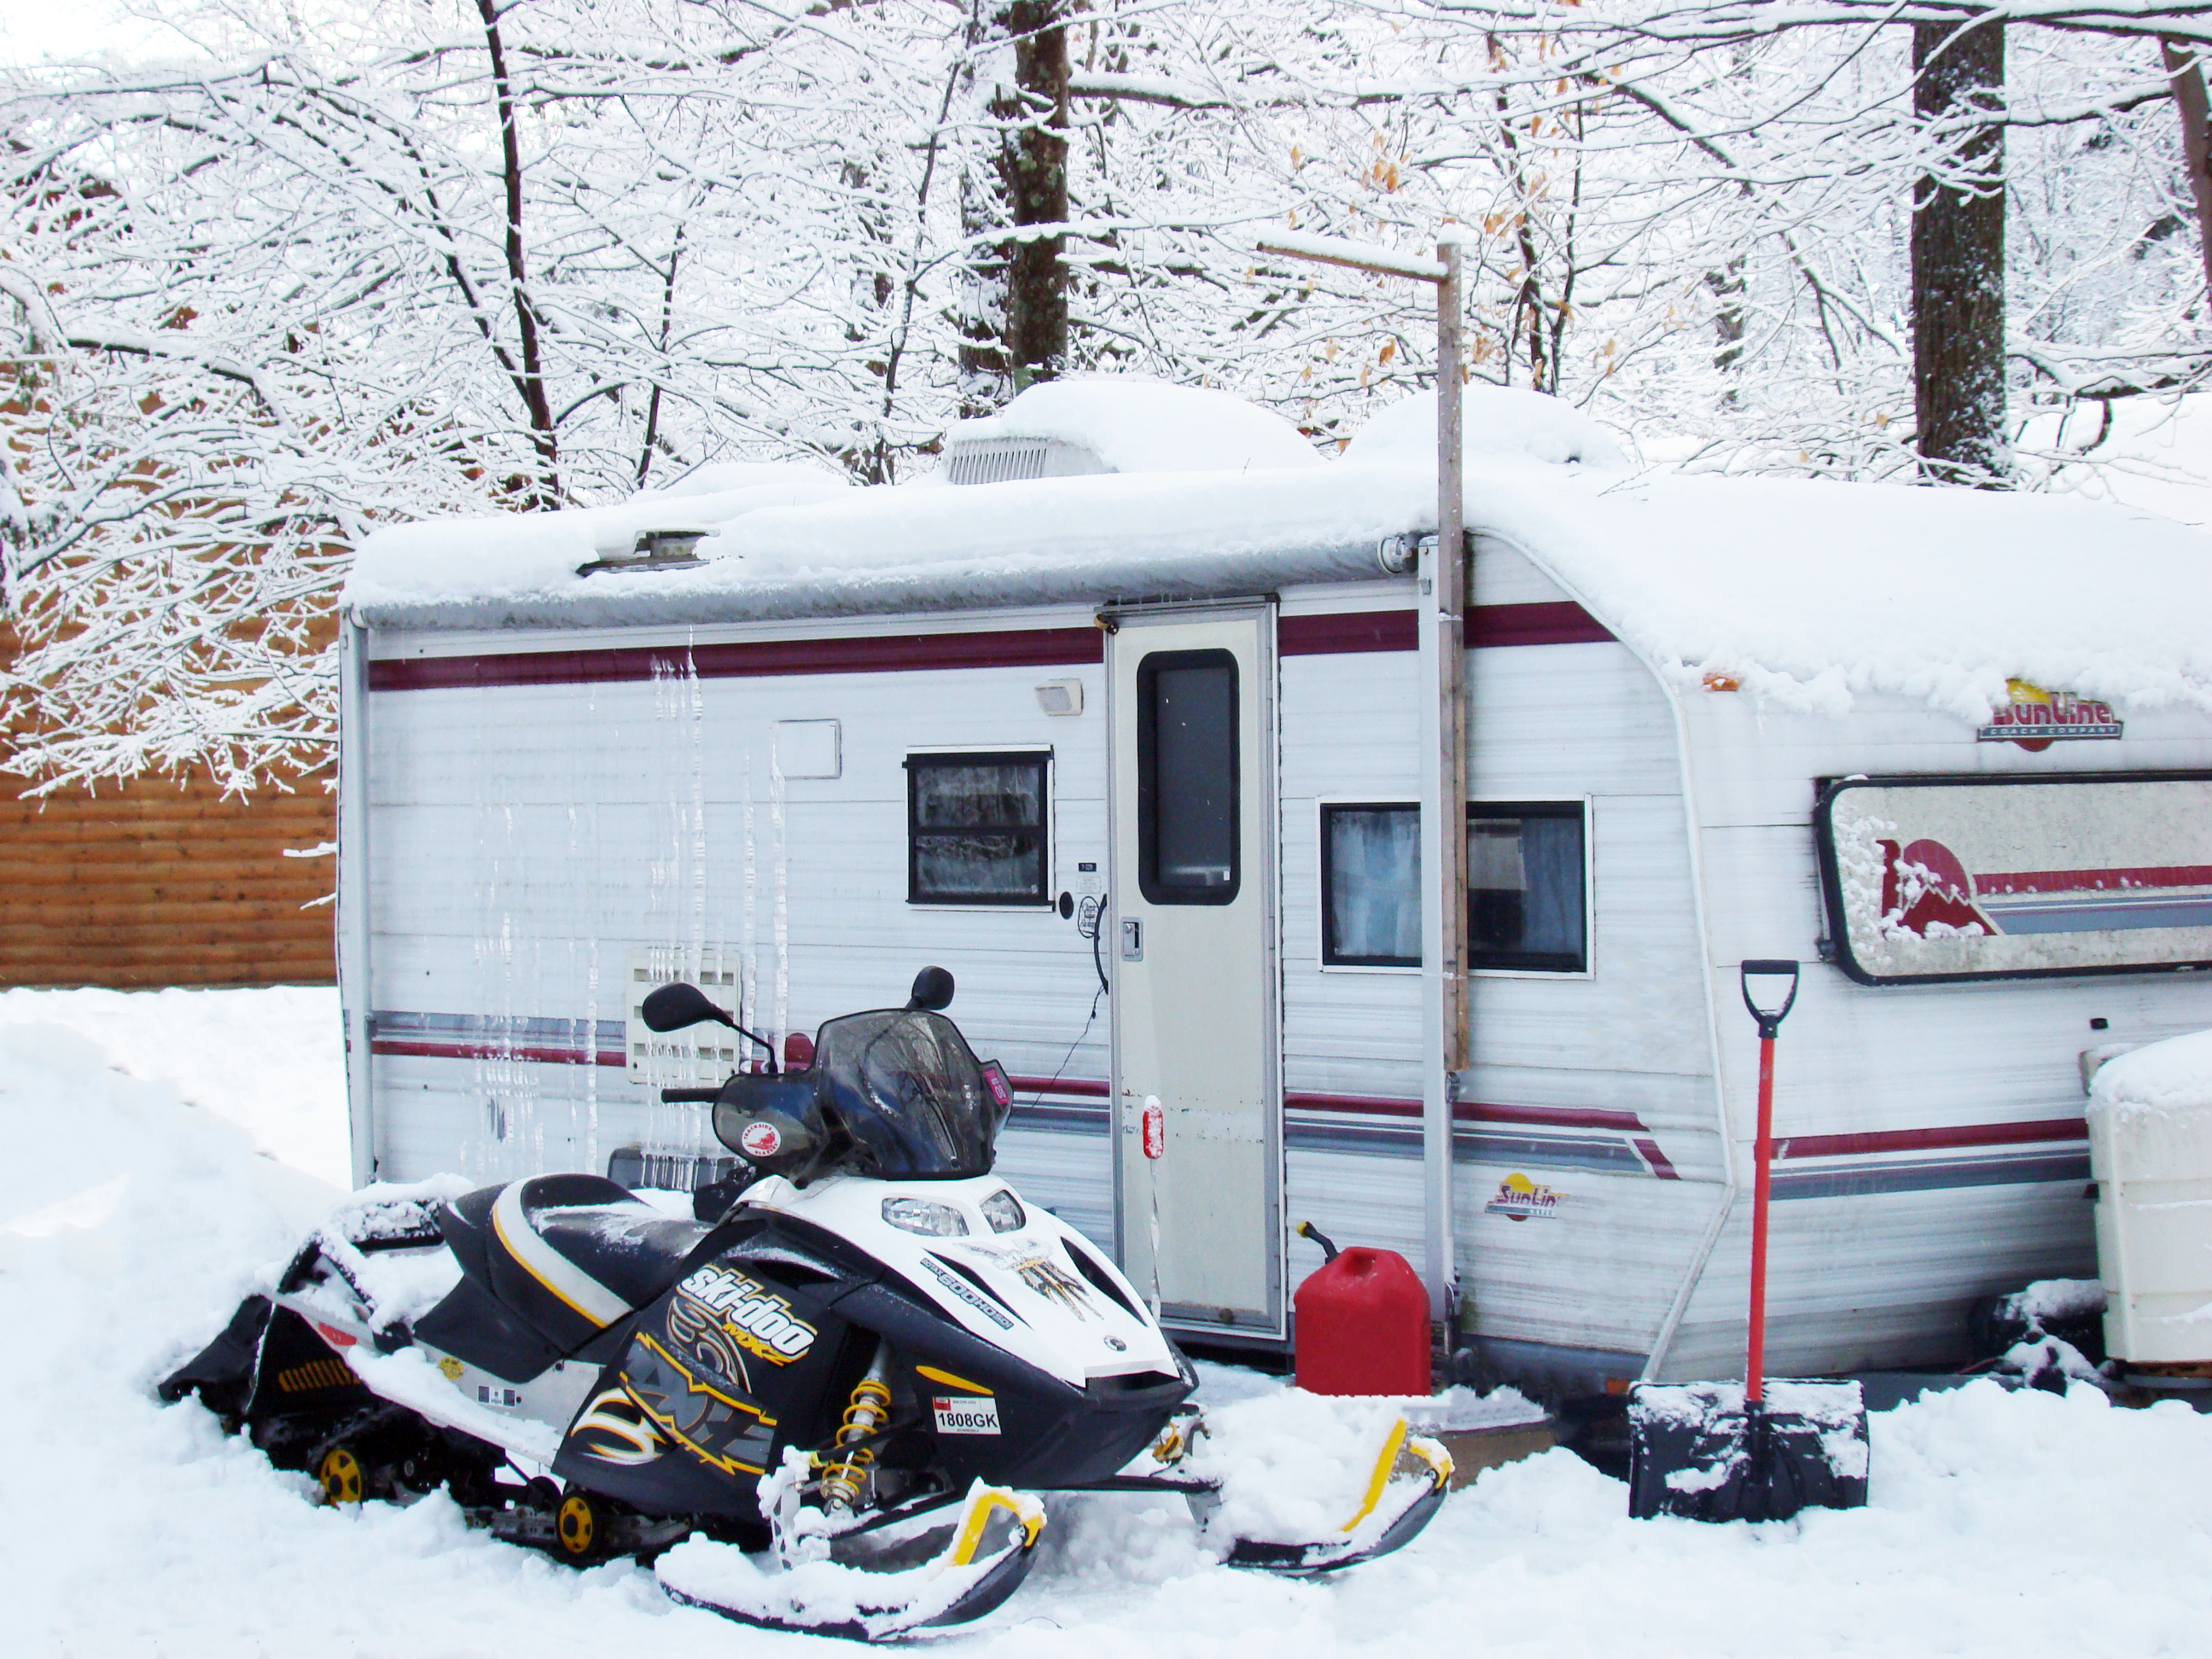 An RV and snowmobile surrounded by the snow and the snow covered trees.